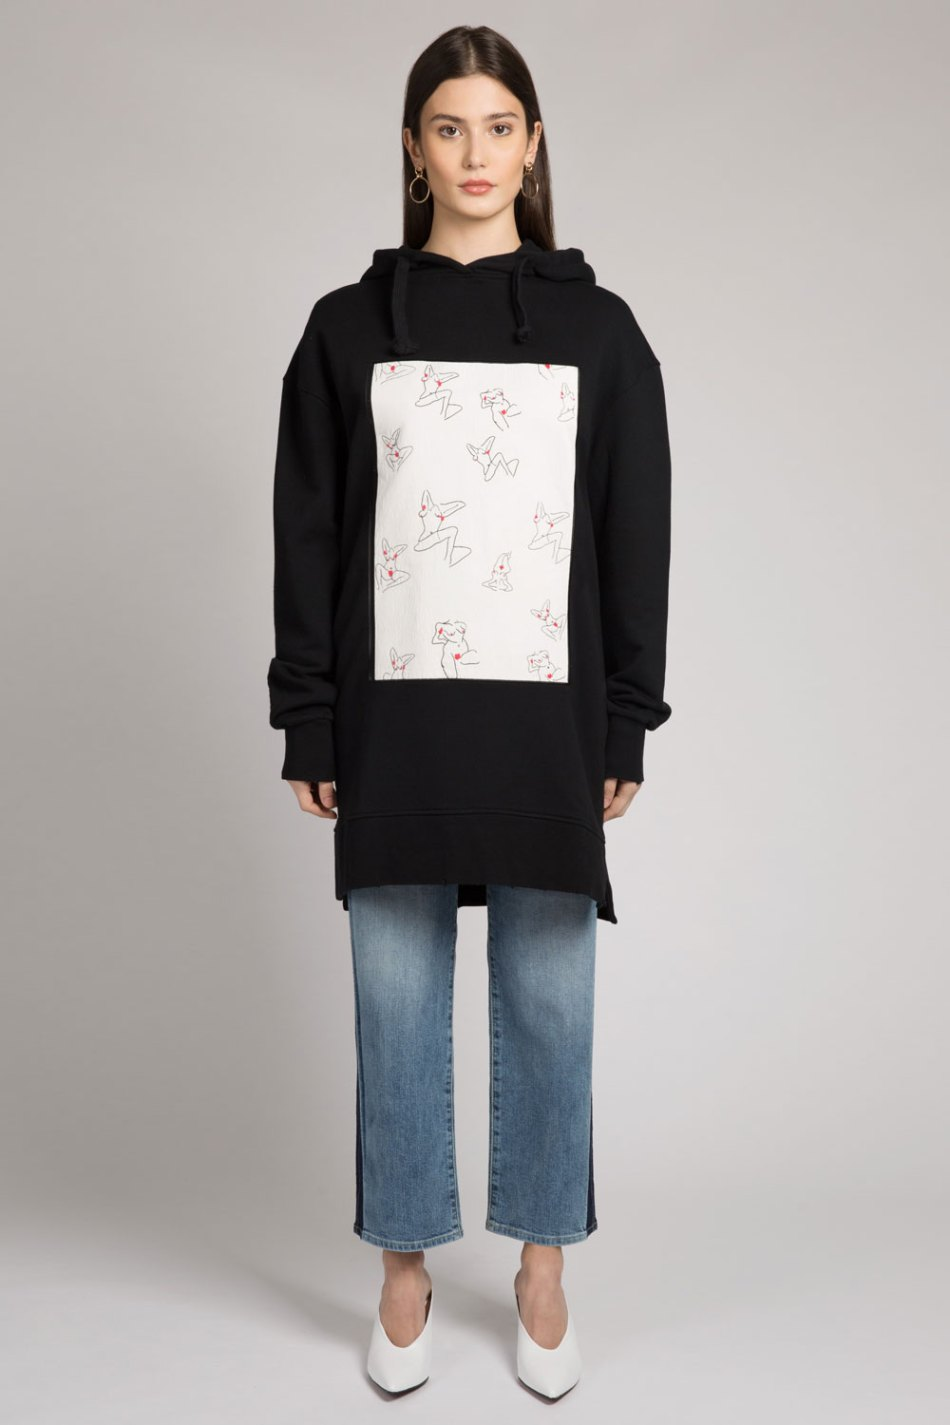 Black oversized cotton hoodie with embroidered female artist print on the front.